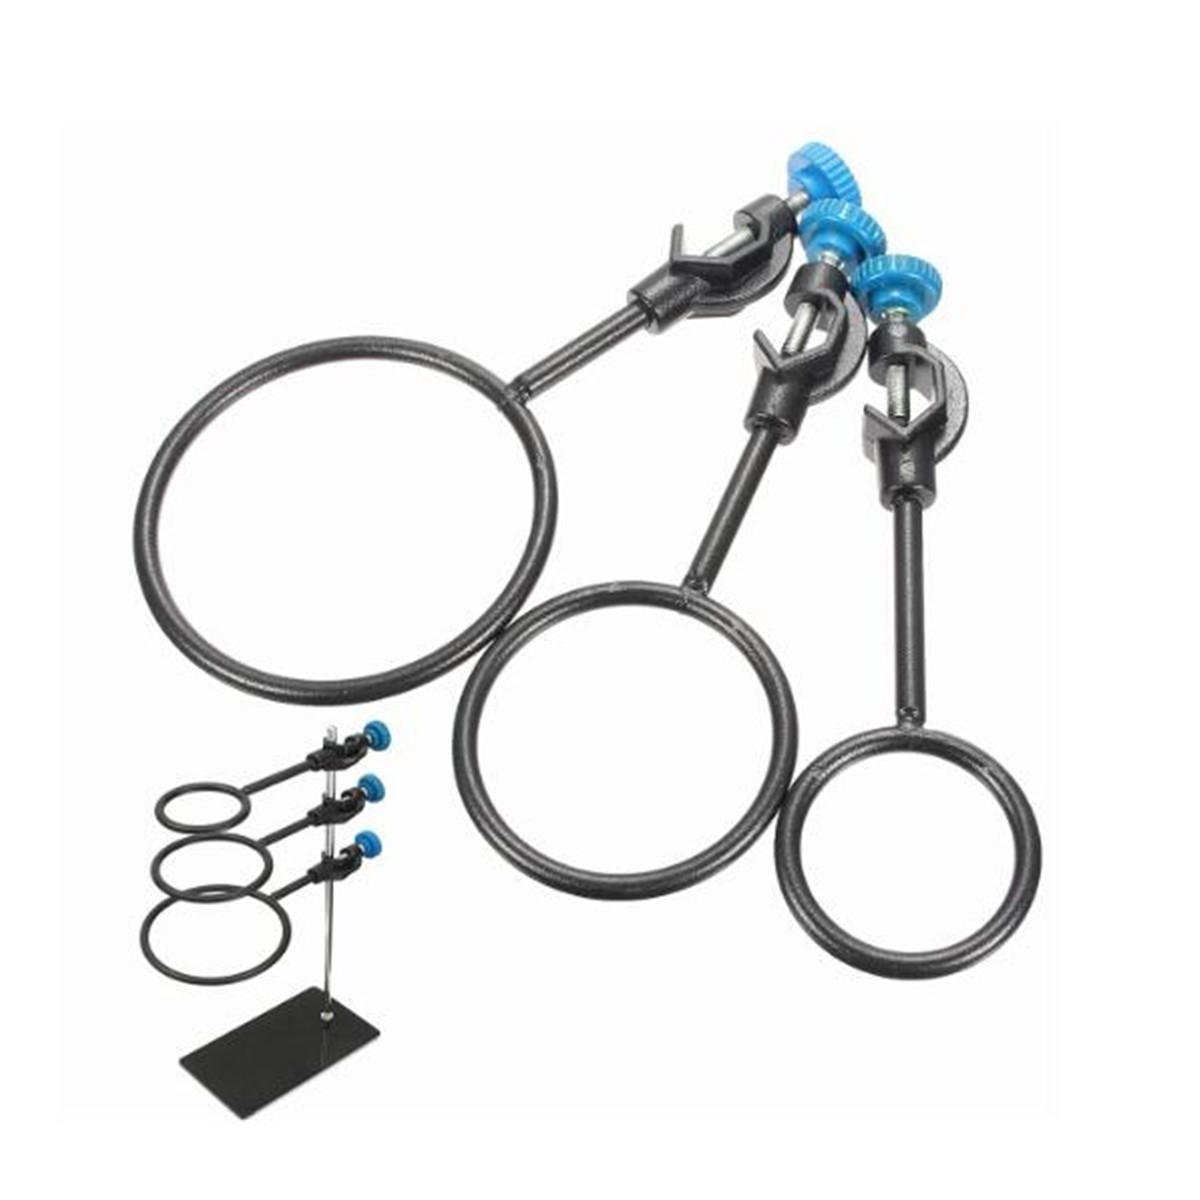 3Pcs Metal Iron Support Ring Lab Stand Loop Kit With